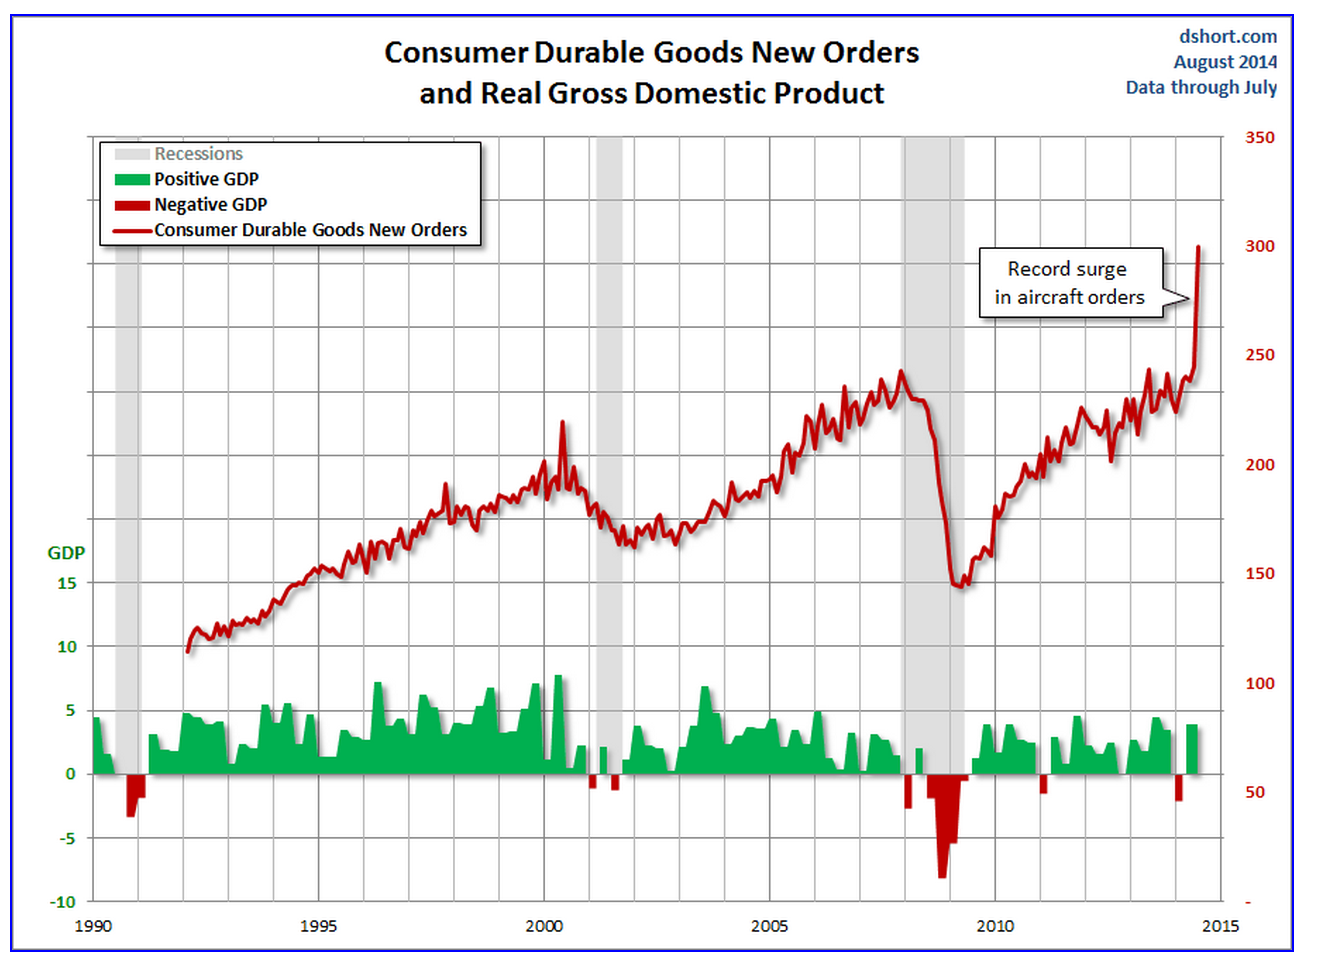 economic factors and consumer durable goods Consumer durables are products with life spans of at least three years the durable goods report is useful as an indicator of consumer health and confidence about economic conditions understand how key economic factors such as inflation, unemployment, interest rates and consumer confidence affect the level.